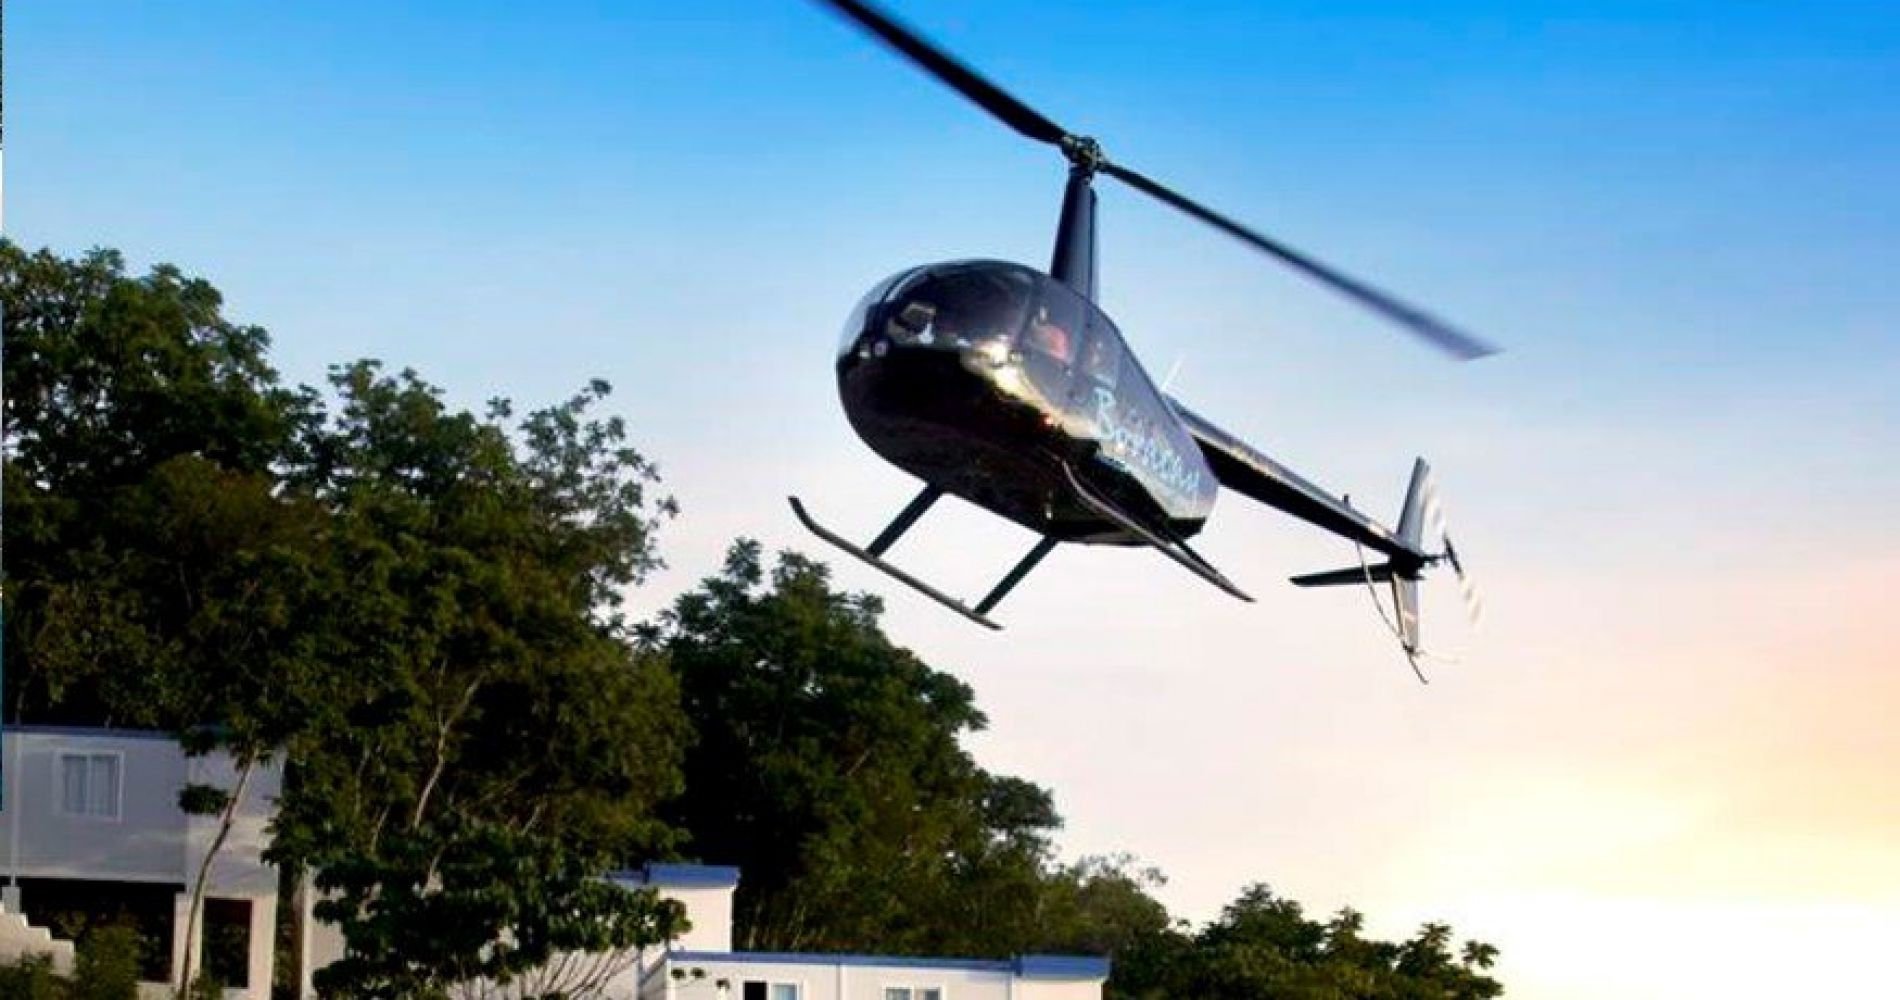 VIP Helicopter Tour in Philippines